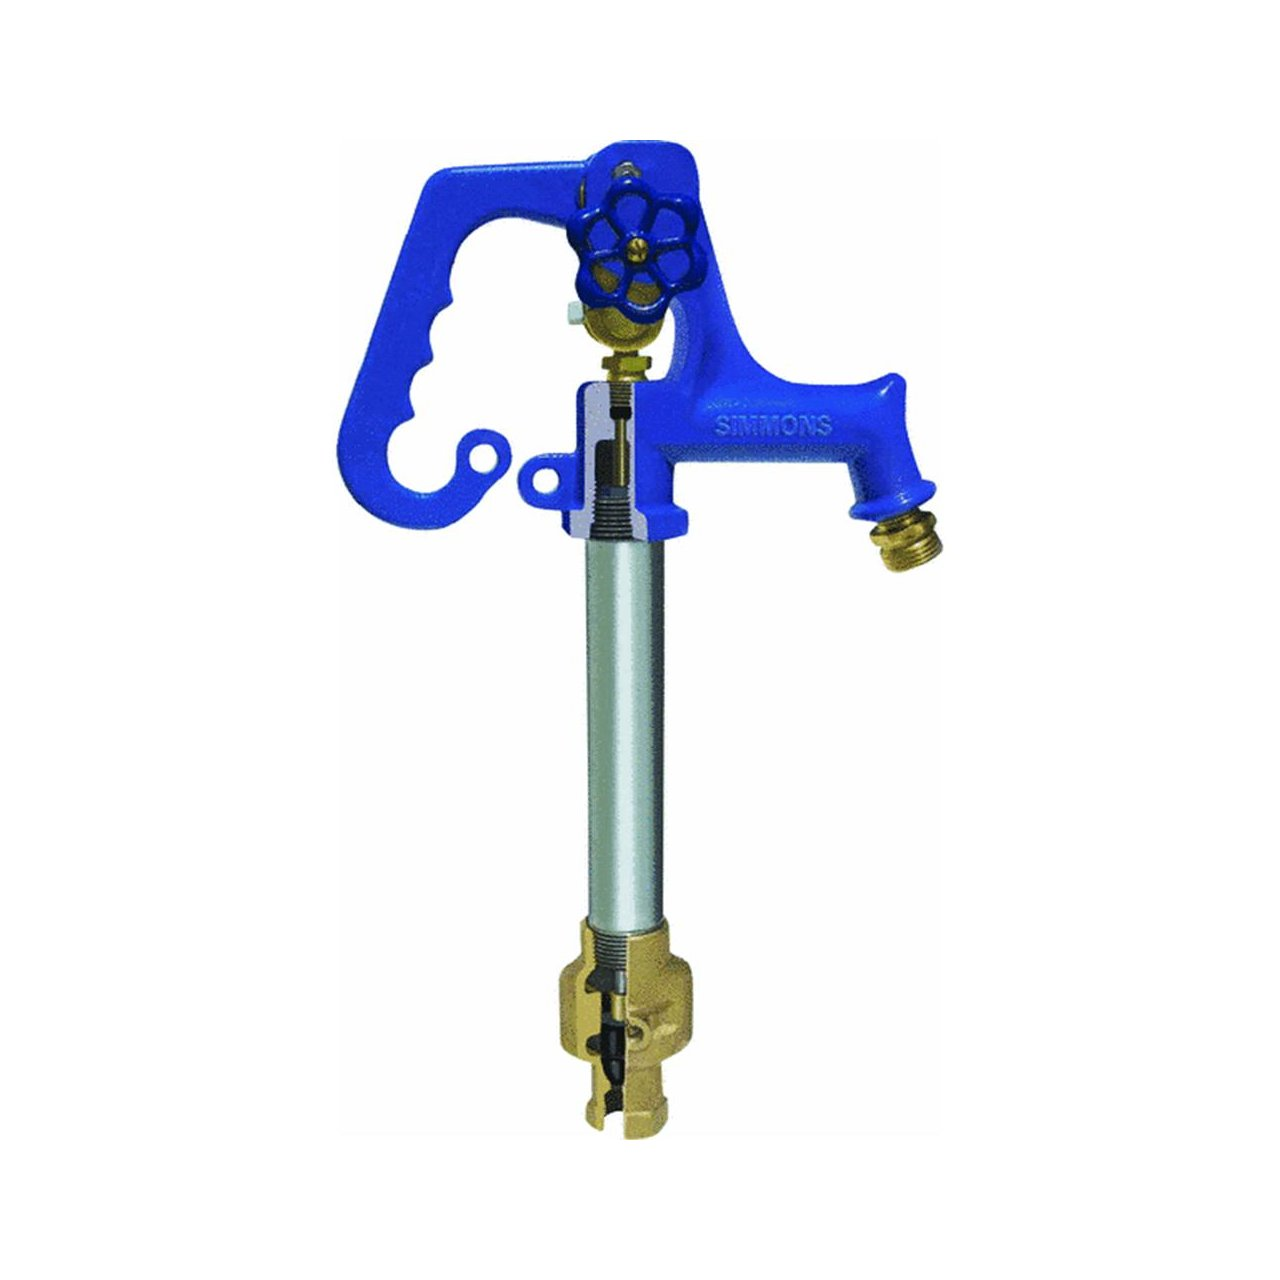 Frost Proof Bury Yard Hydrant - Plumbing Hoses - Amazon.com